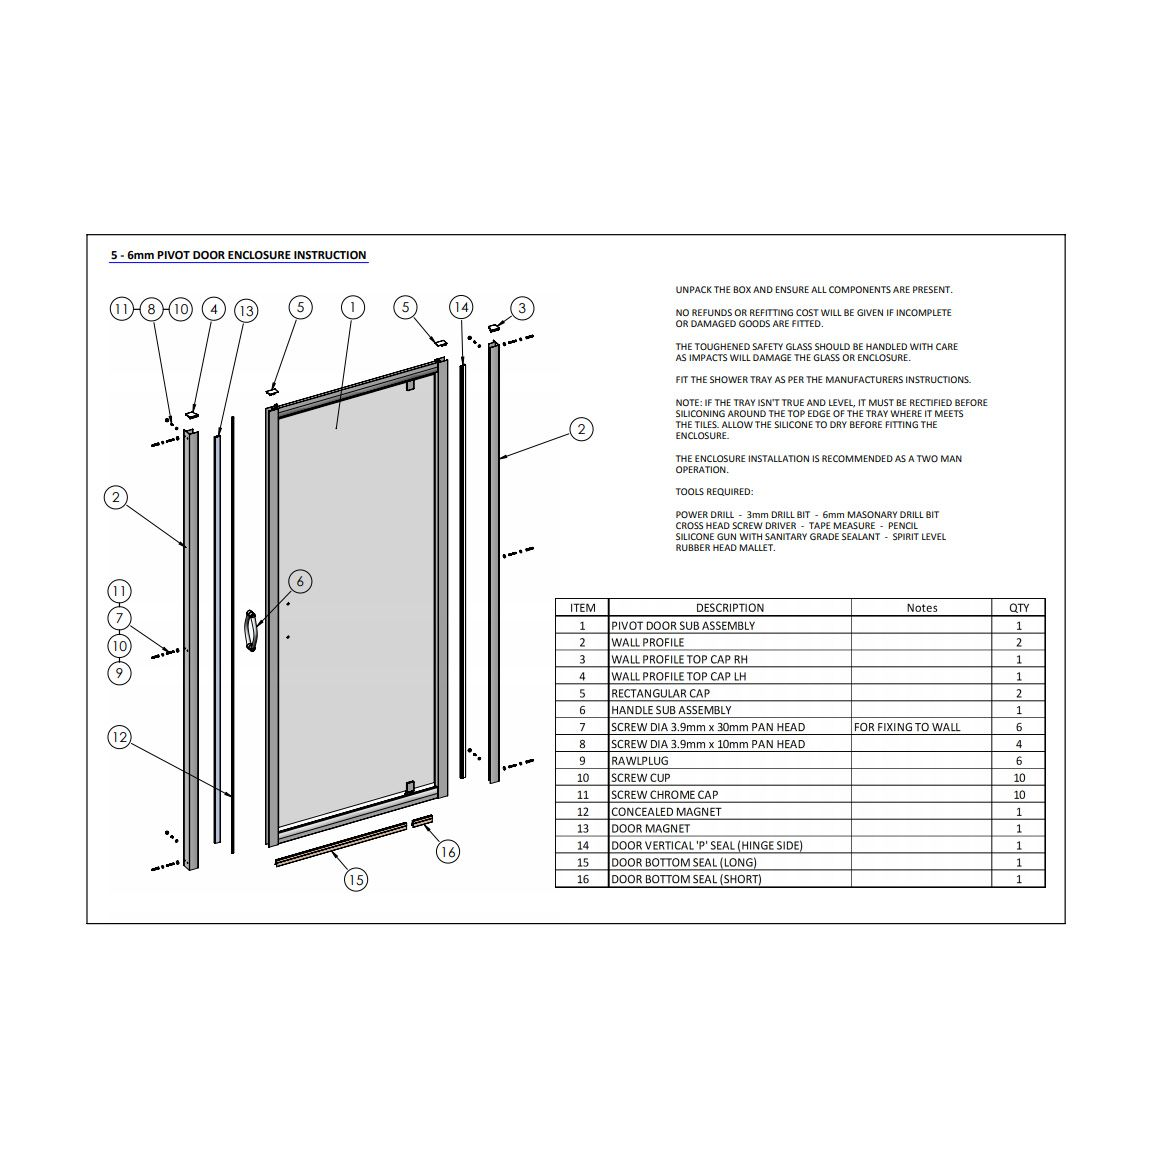 Premier Bathrooms Ella 760mm Pivot Door Erpd76 Spare Parts